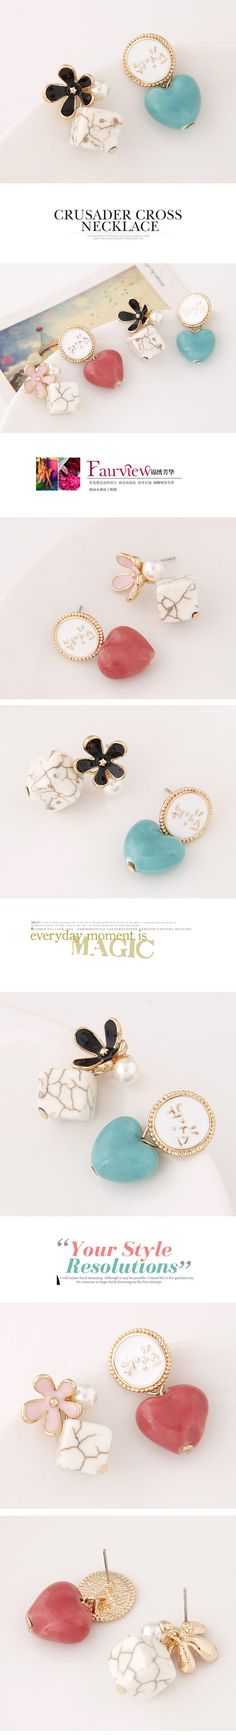 Asymmetric Earrings, Zinc Alloy, with Resin, Heart, gold color plated, lead & cadmium free, 25x14x14mm,china wholesale jewelry beads